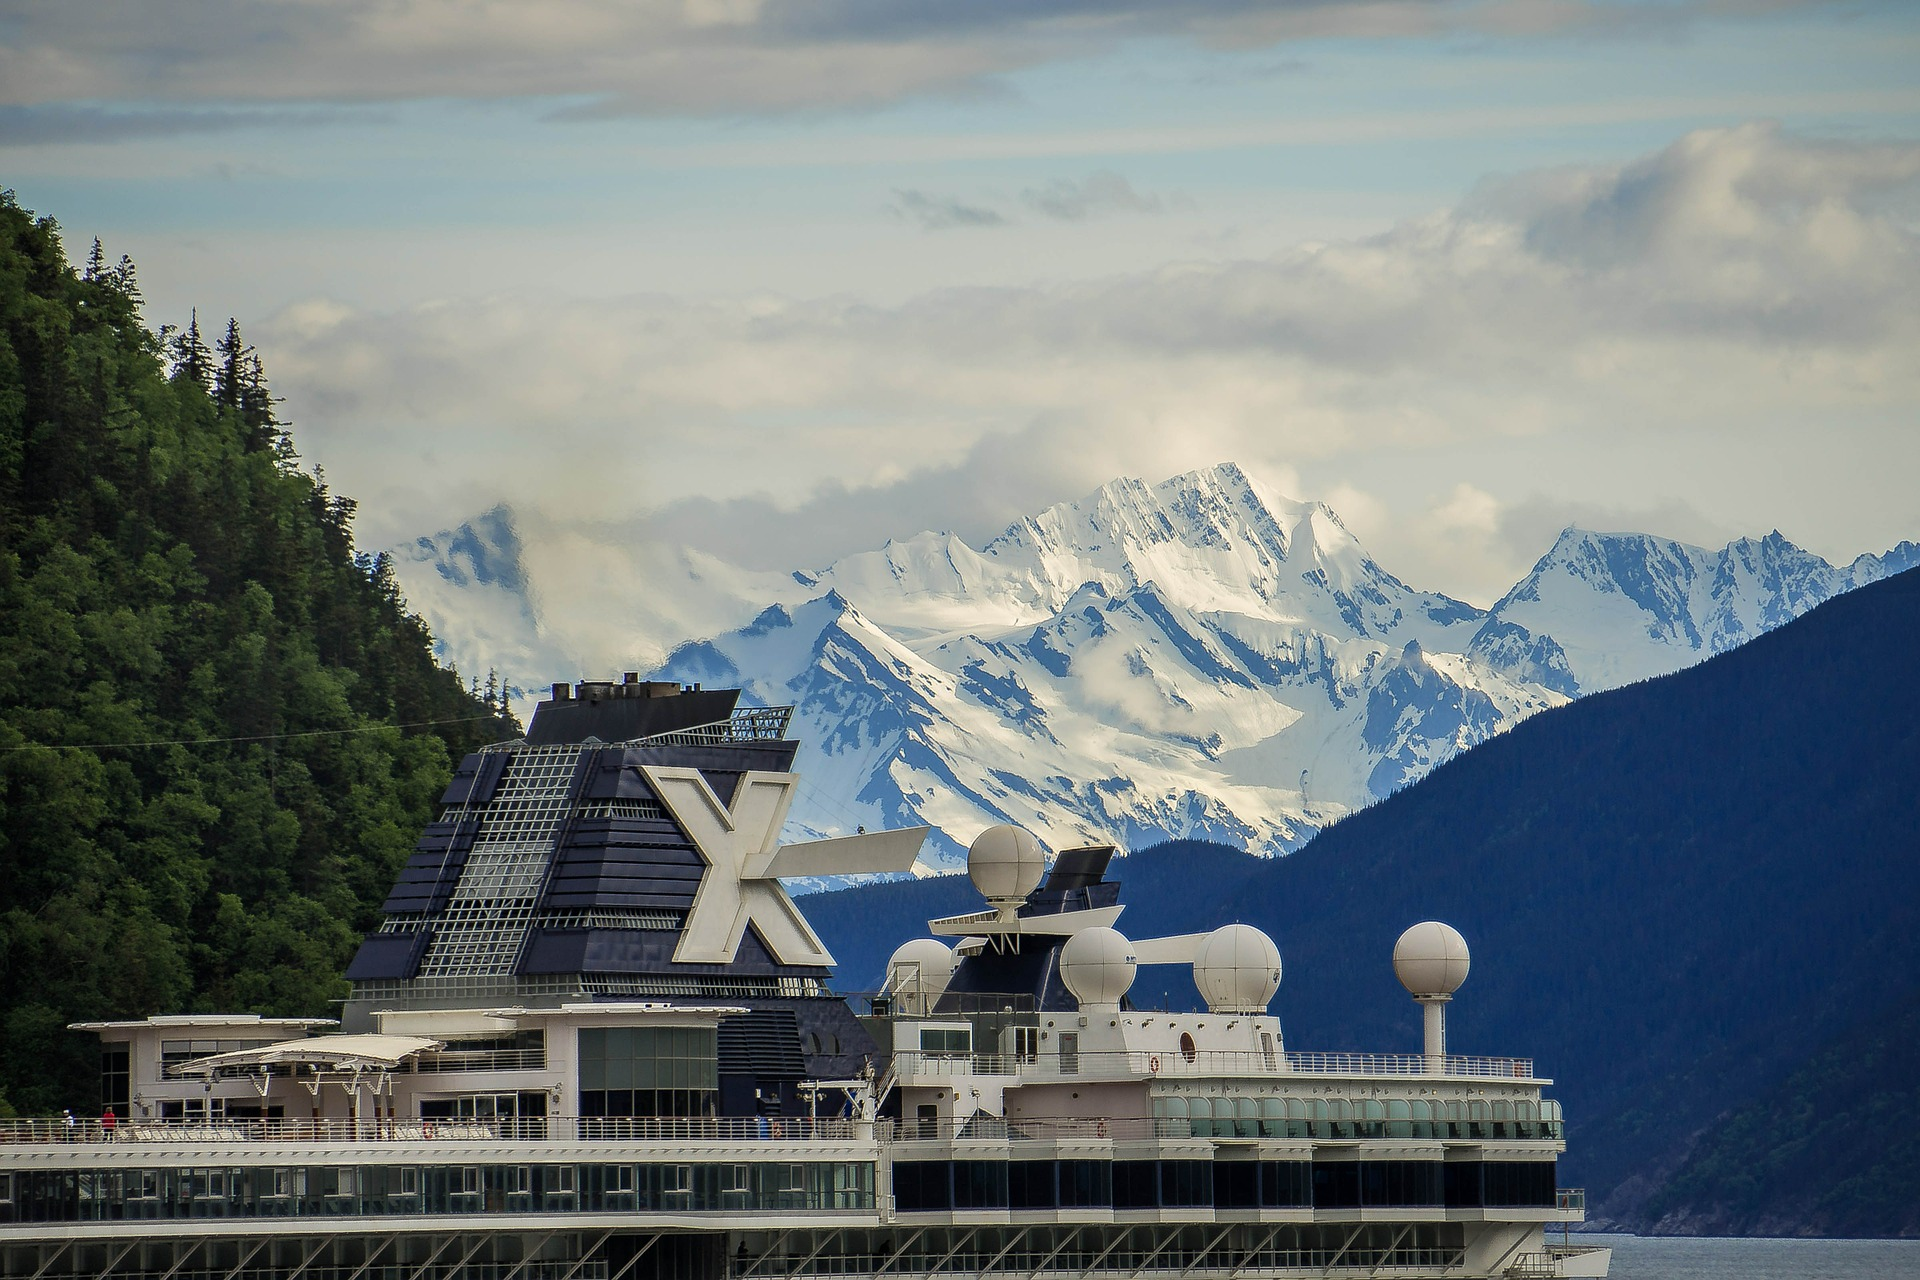 graphic about Printable Packing List for Alaska Cruise titled The Fantastic Alaska Cruise Packing Checklist For Any Season Of Calendar year